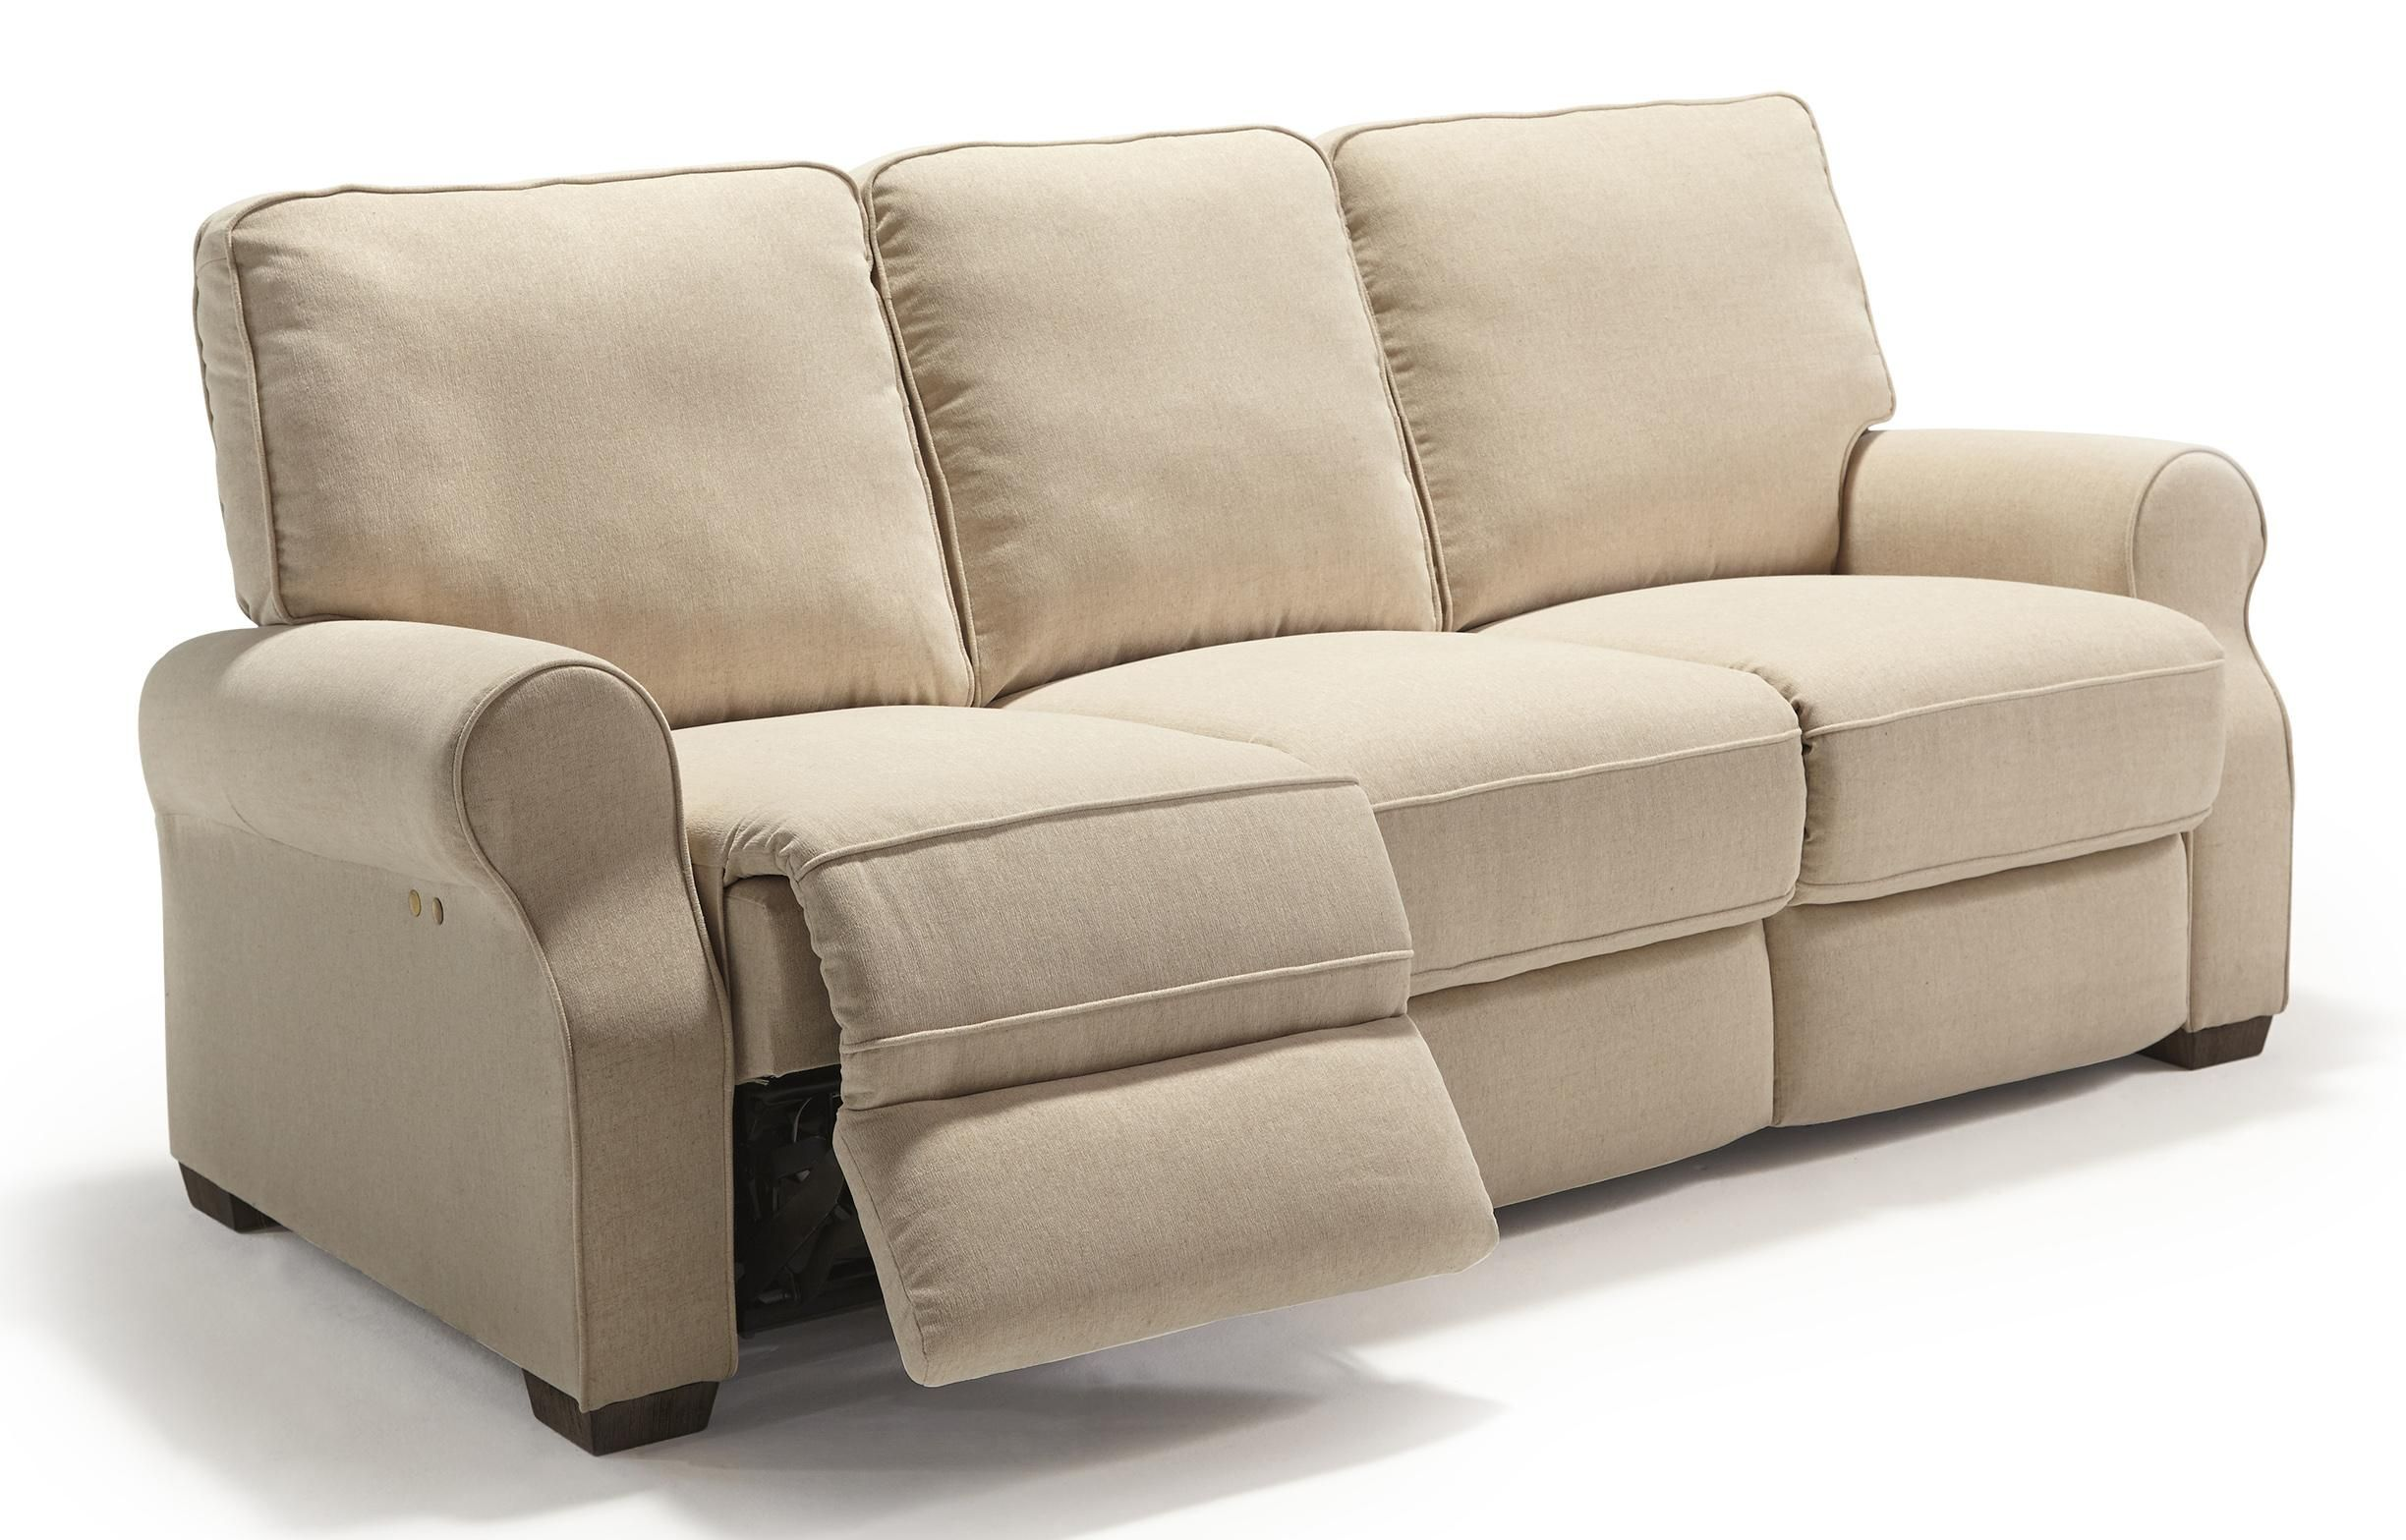 Joyner POWER Lay Flat Reclining Sofa with Drop Down Table in